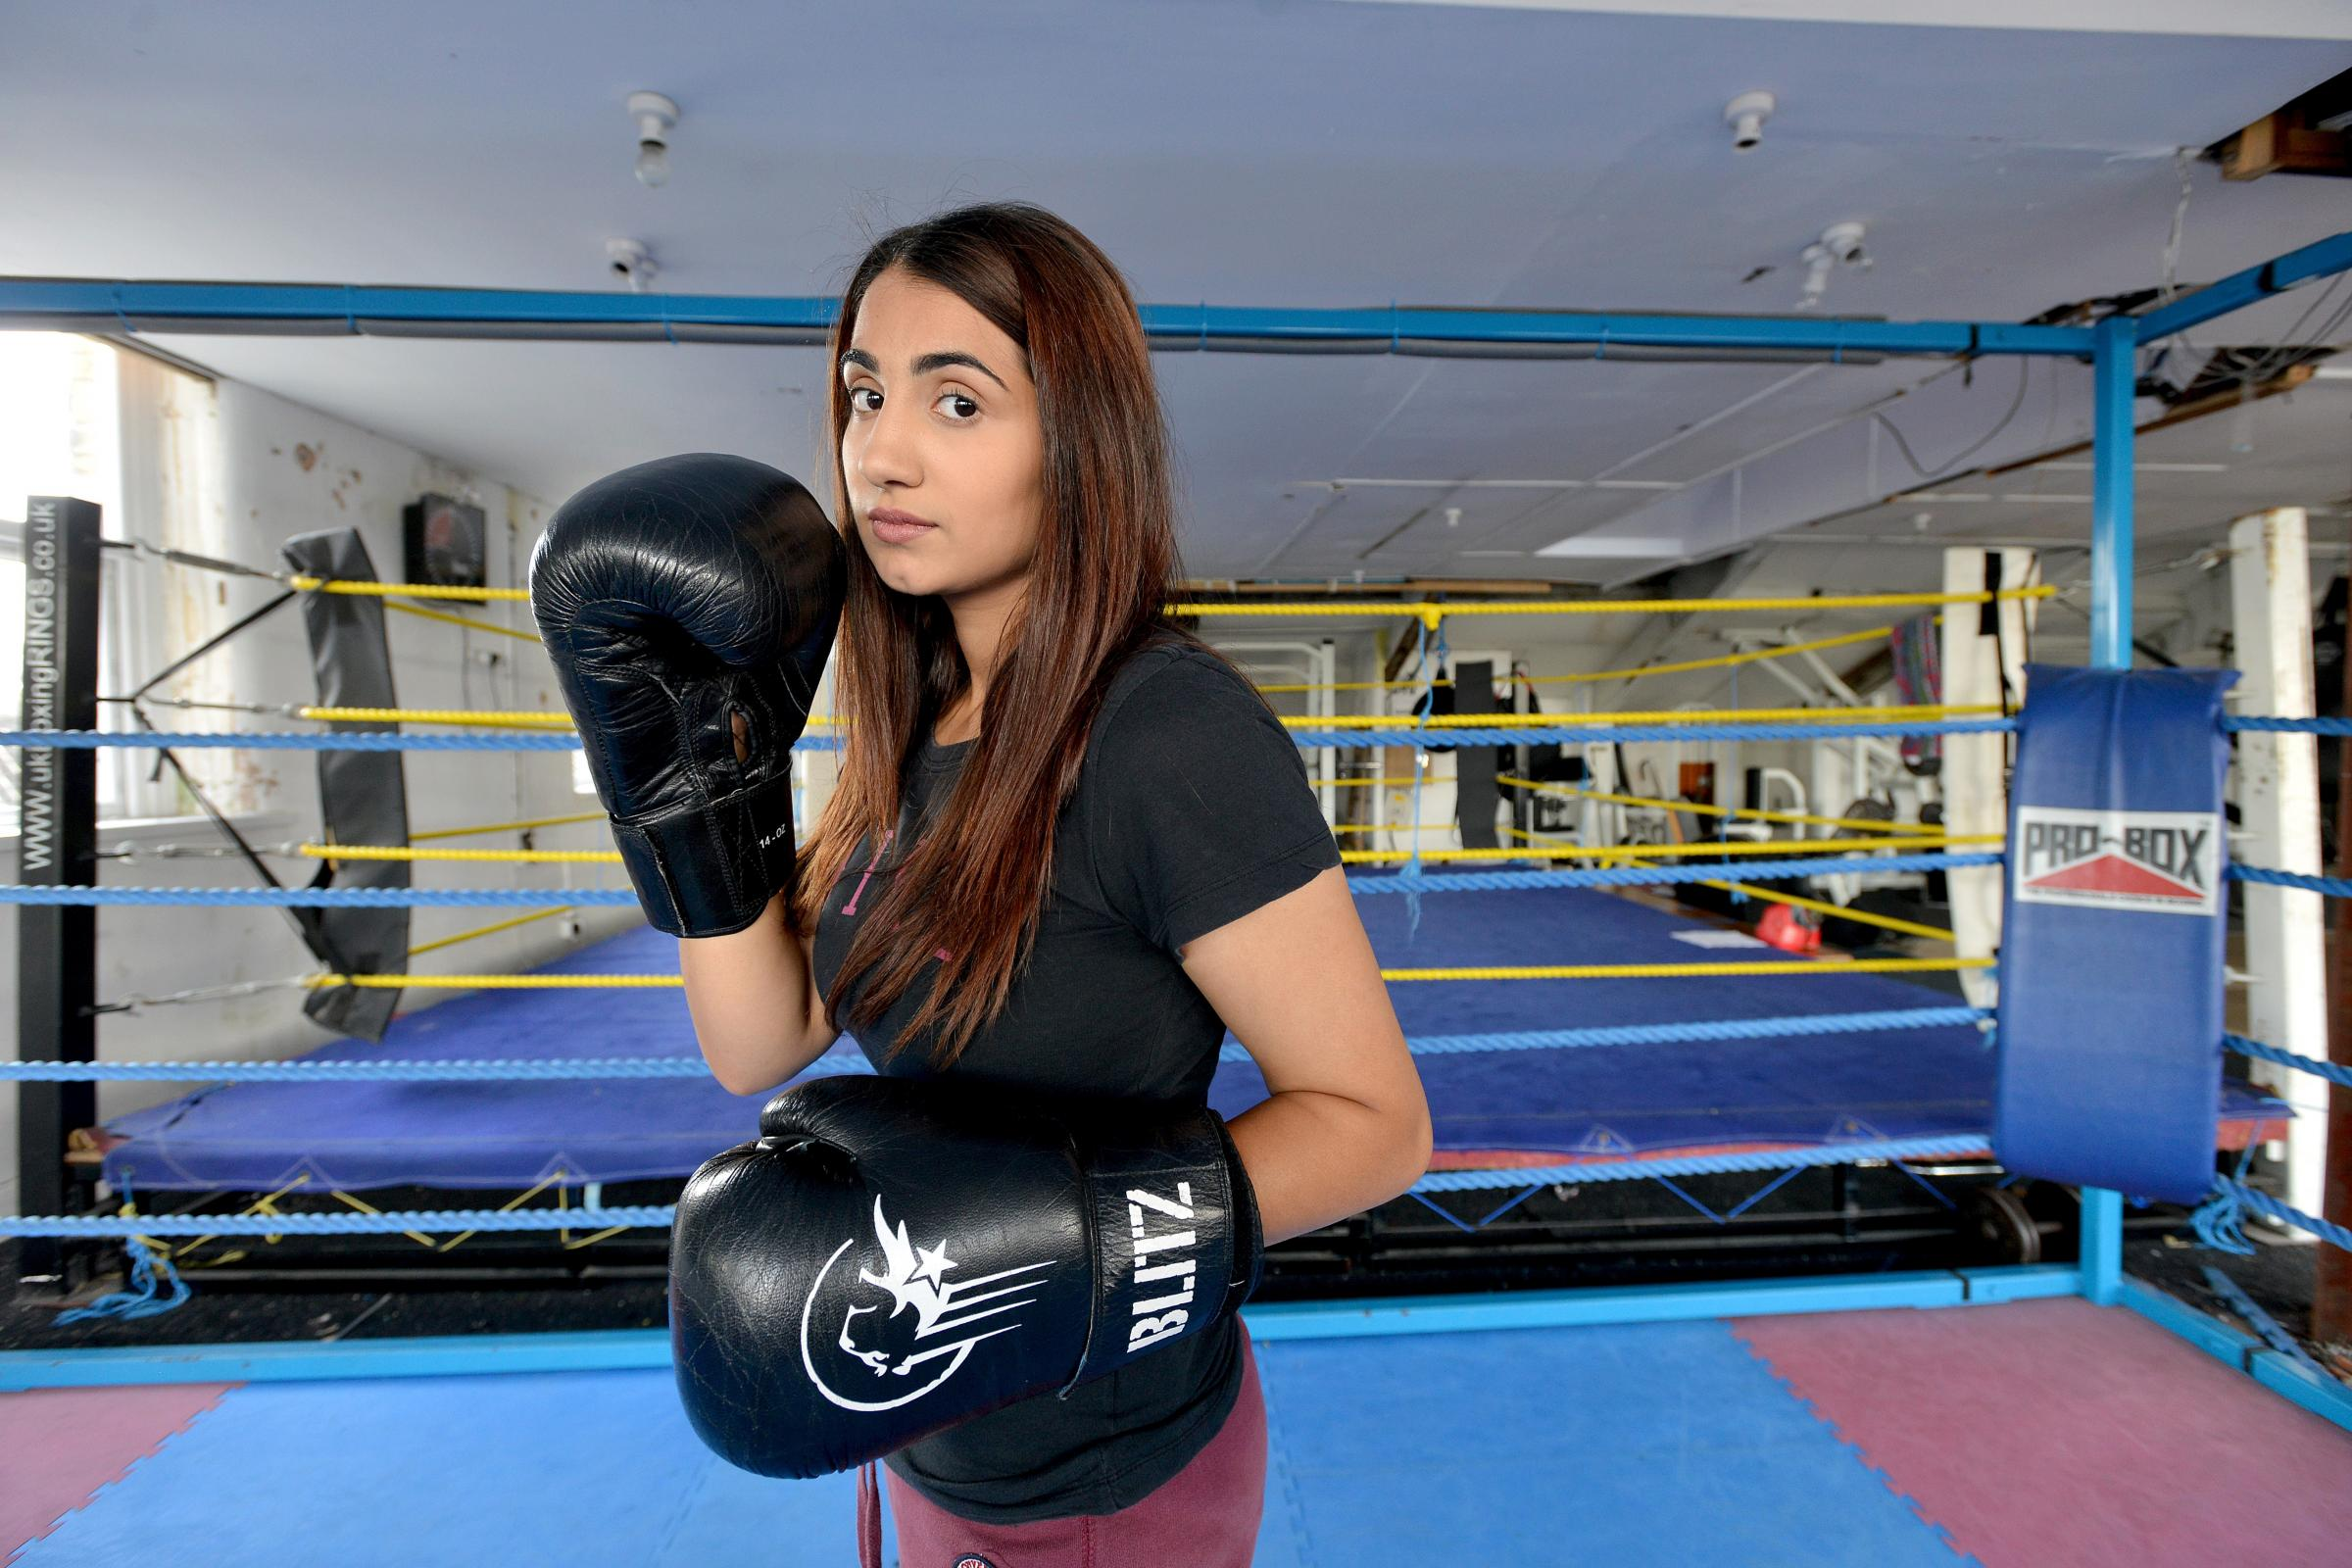 VIDEO: Britain's first female Muslim boxer's story taken to the stage